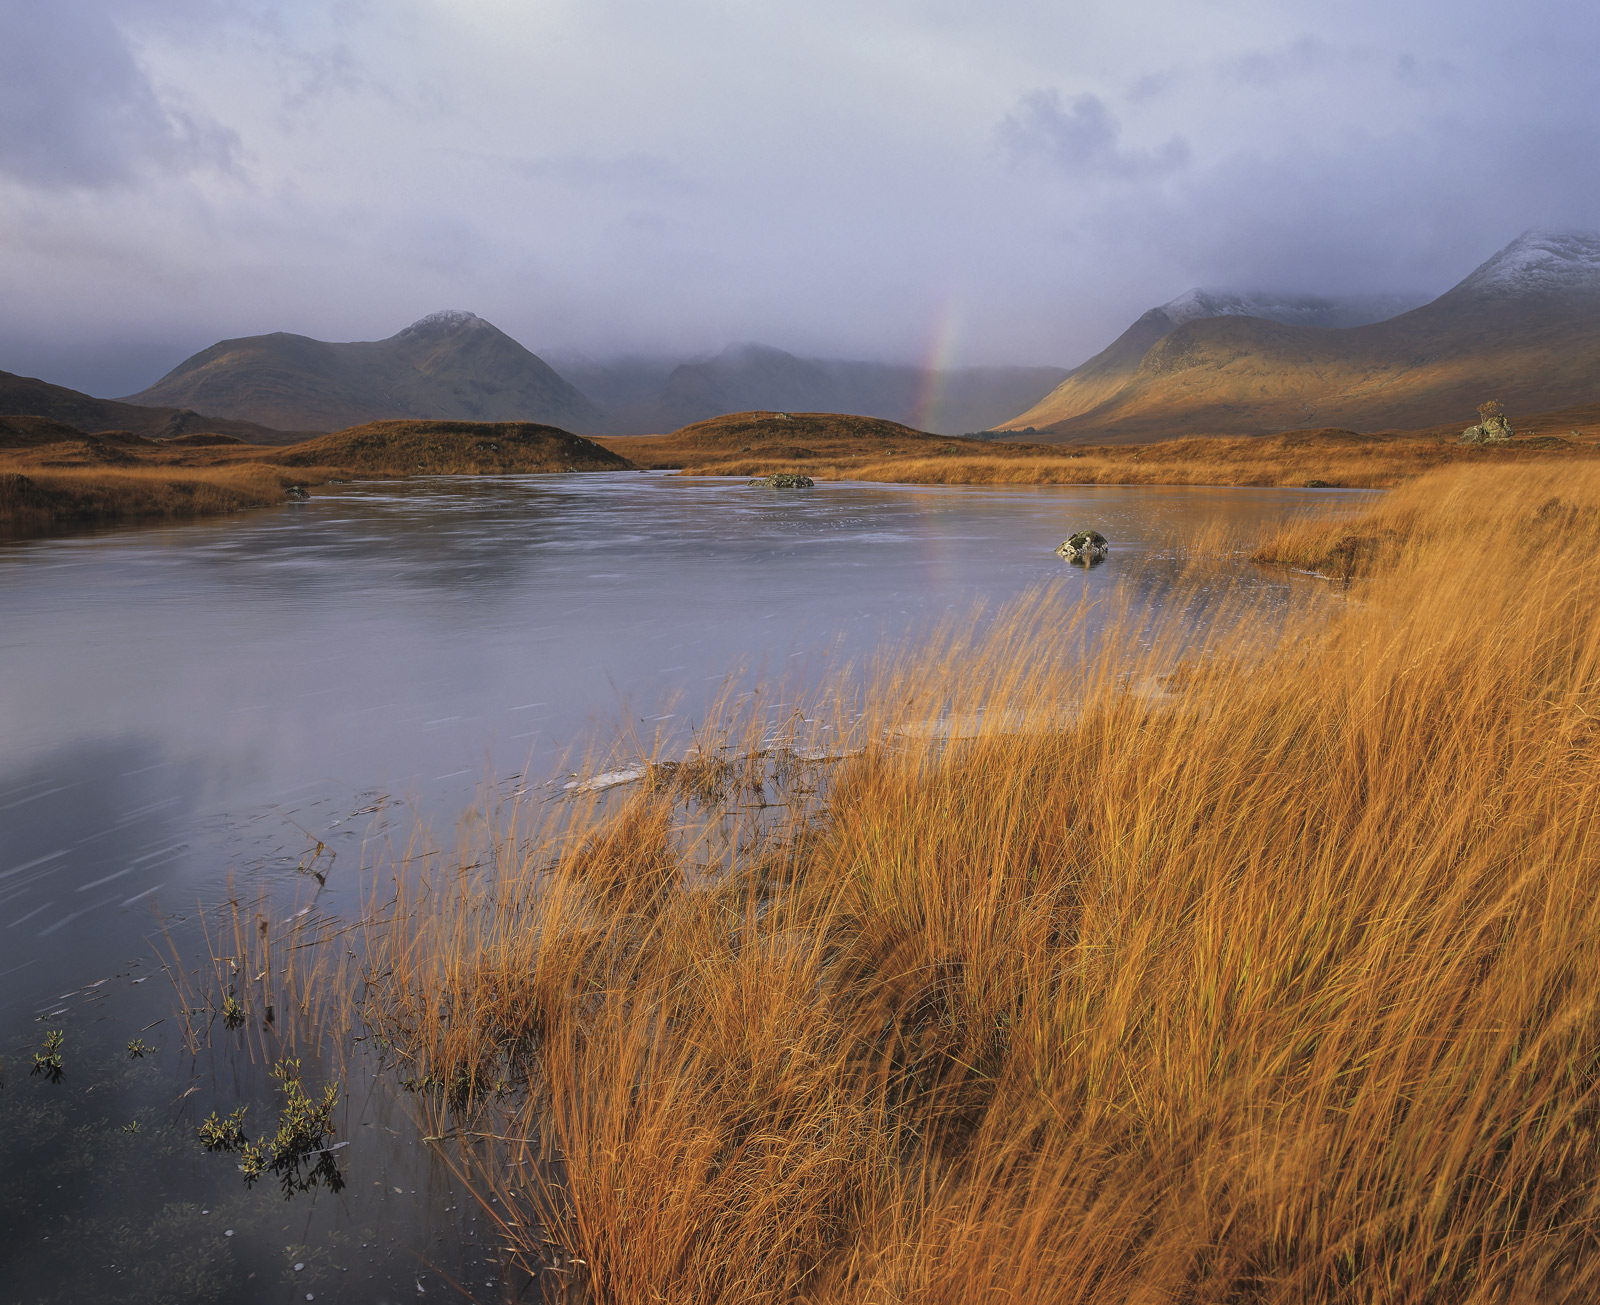 Flaming orange deer grass edge the borders of Loch Na Stainge contrasting with the steely blue of an approaching autumnal storm...